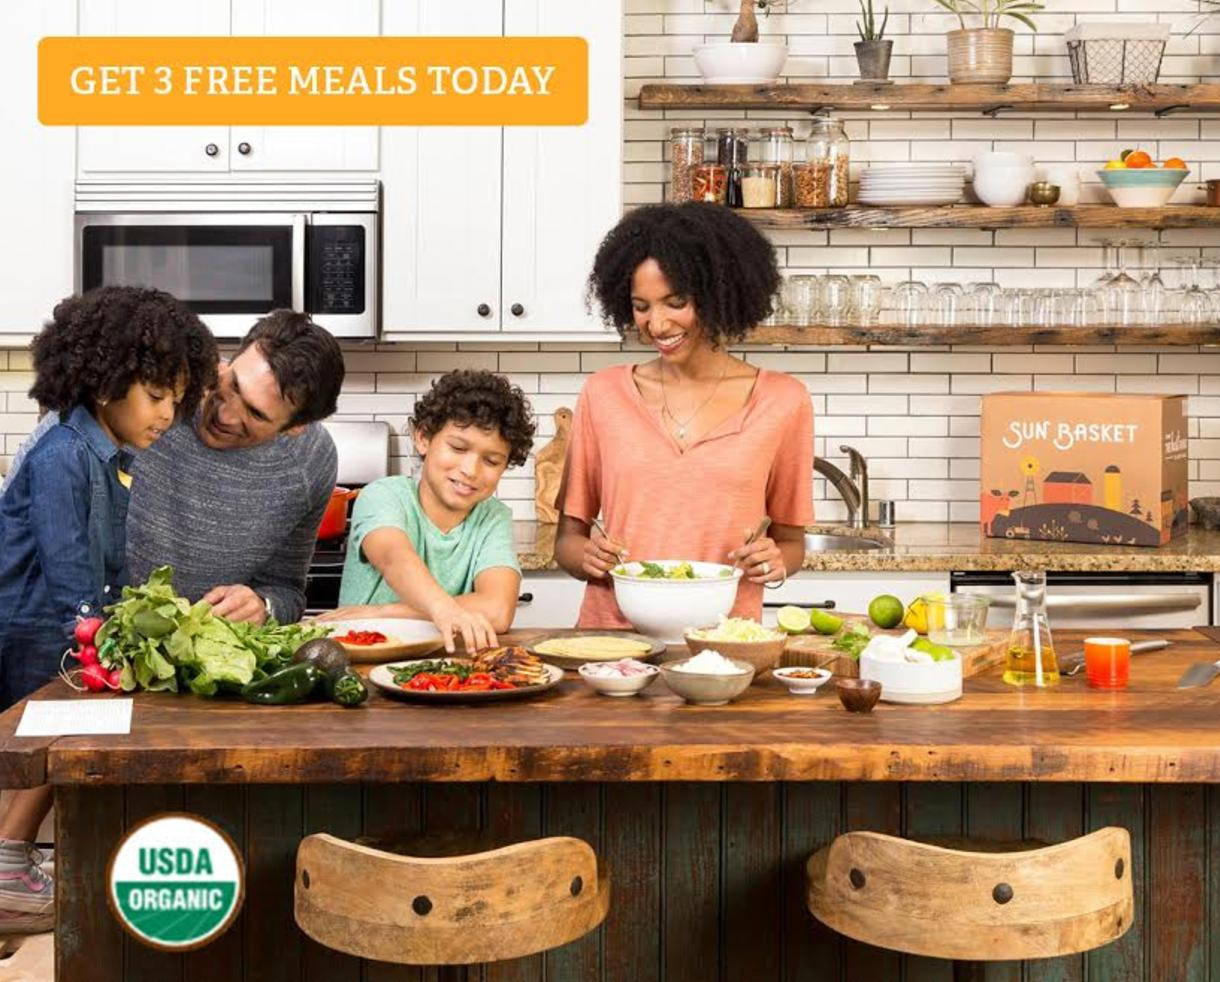 Three FREE Meals from Sun Basket - The Country's Top Organic & Non-GMO Recipe Delivery Service!